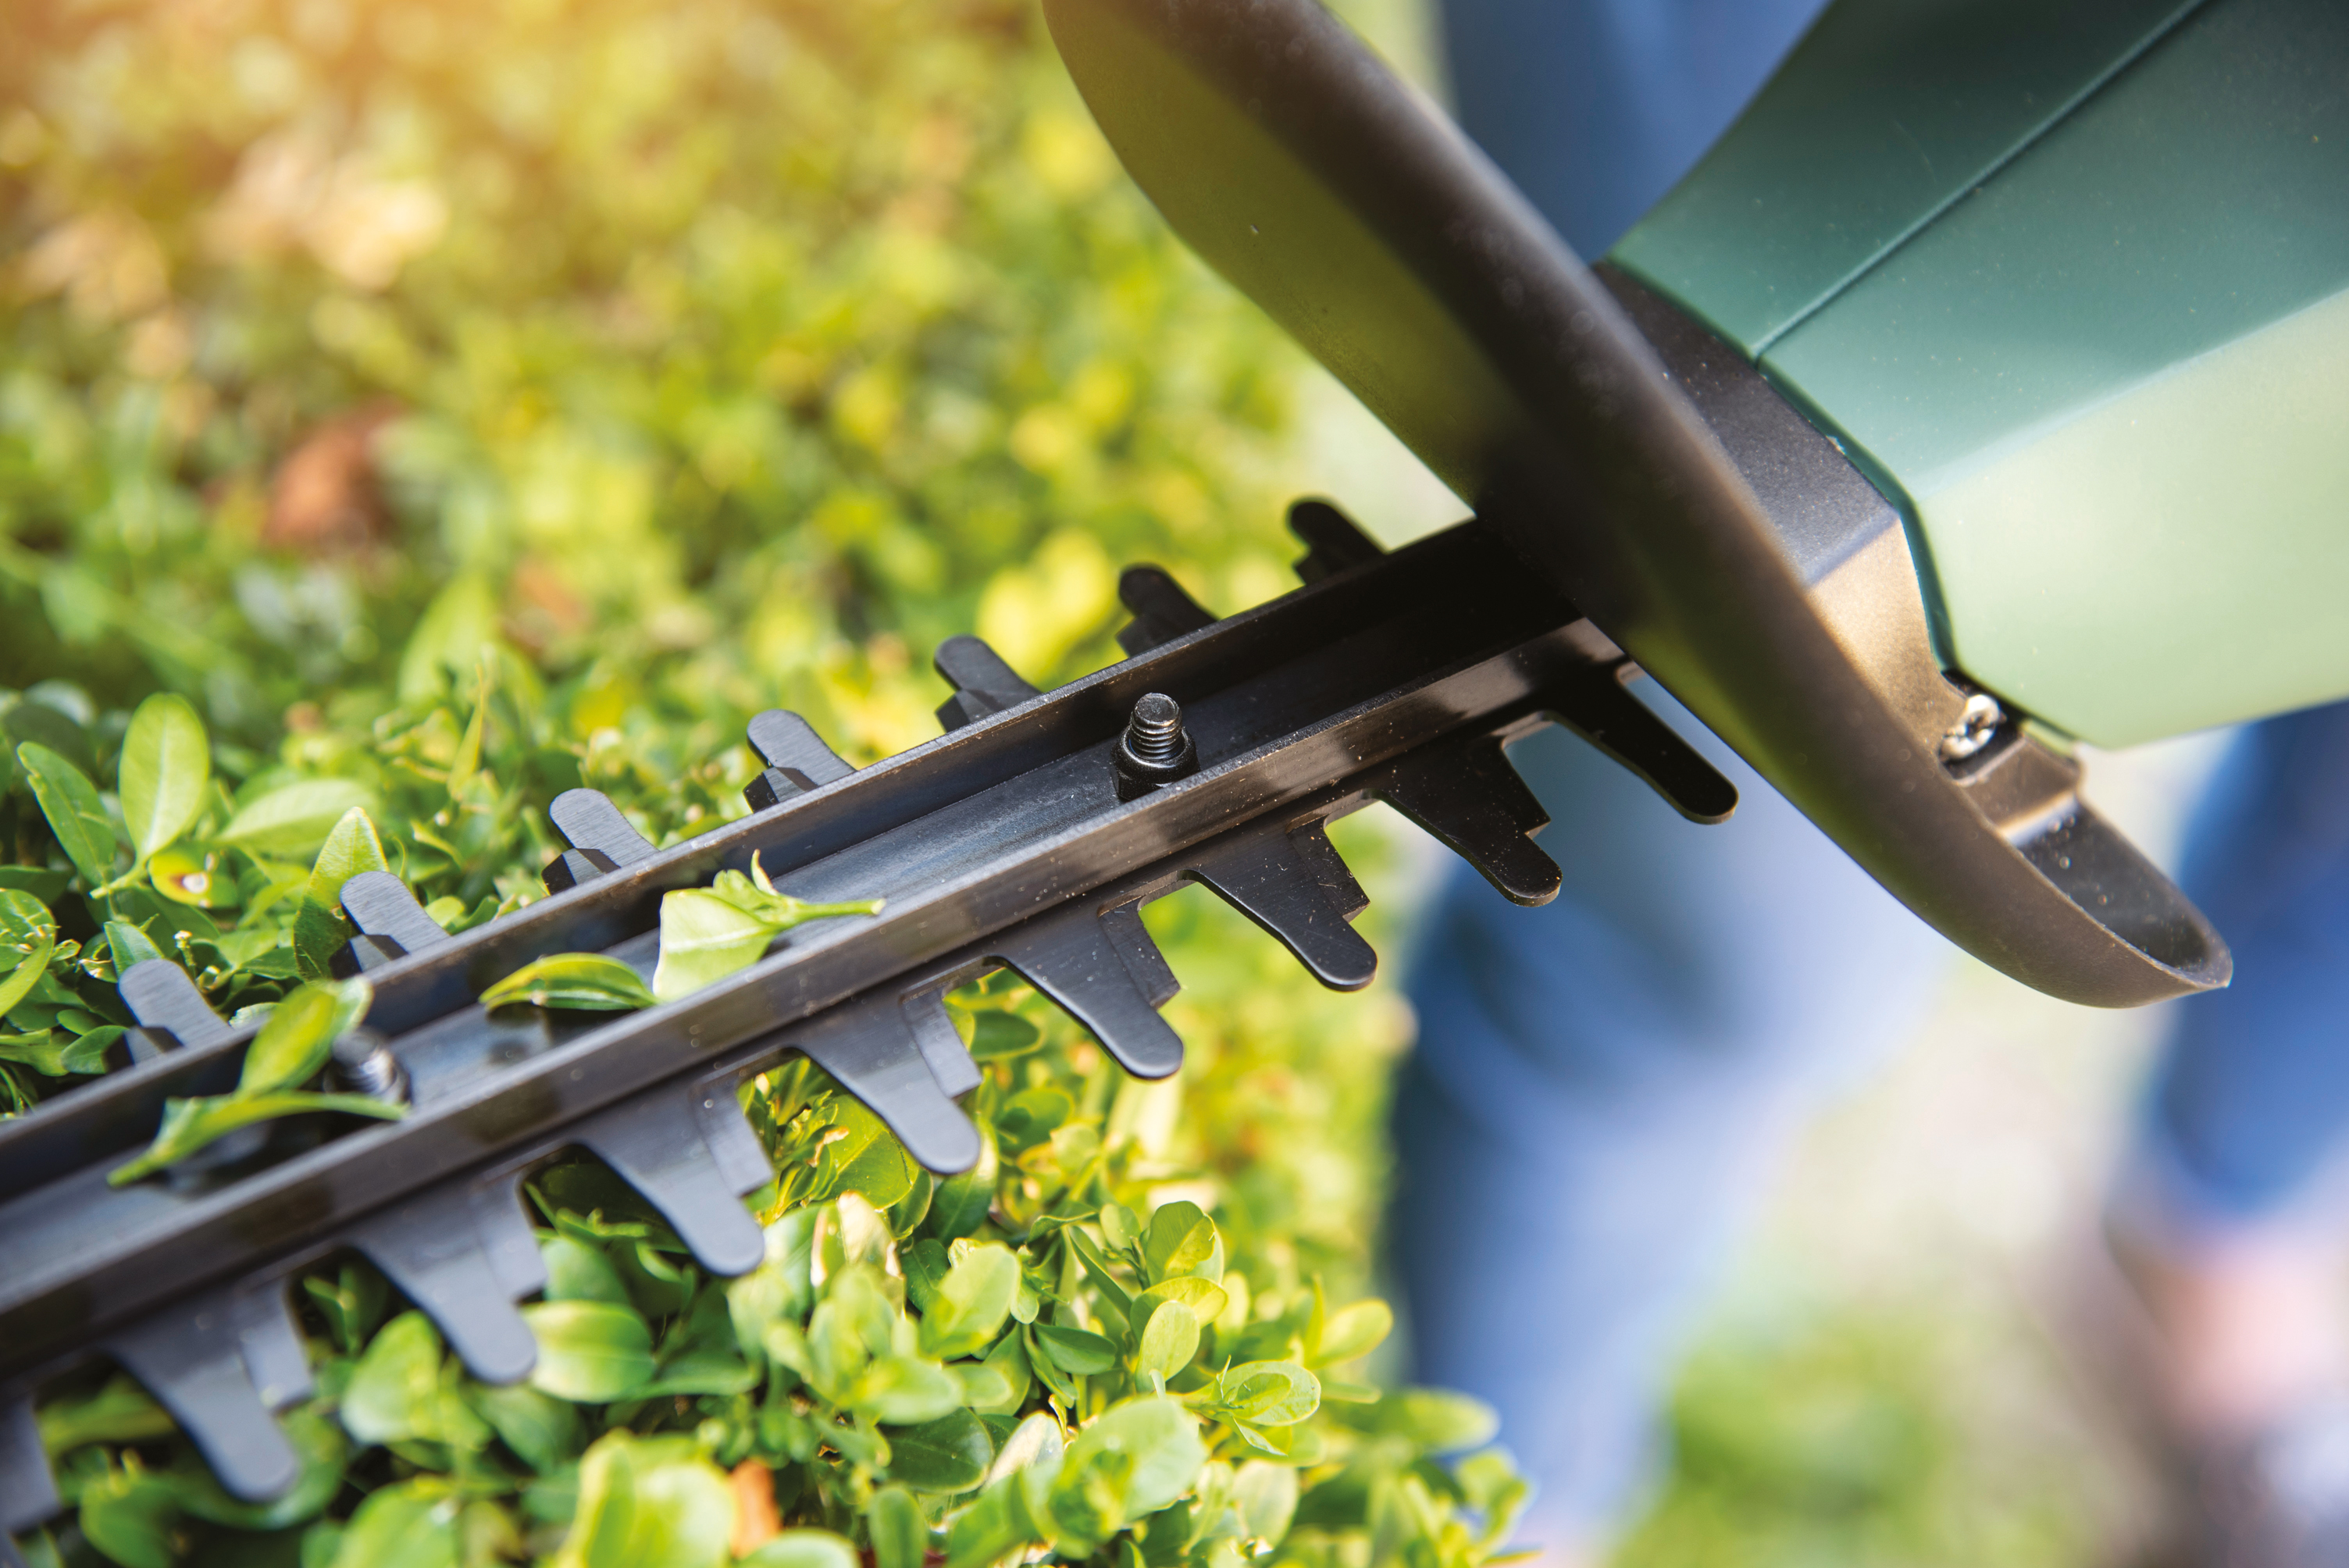 Make light work of hedge-trimming with a new cordless trimmer (Bosch/PA)